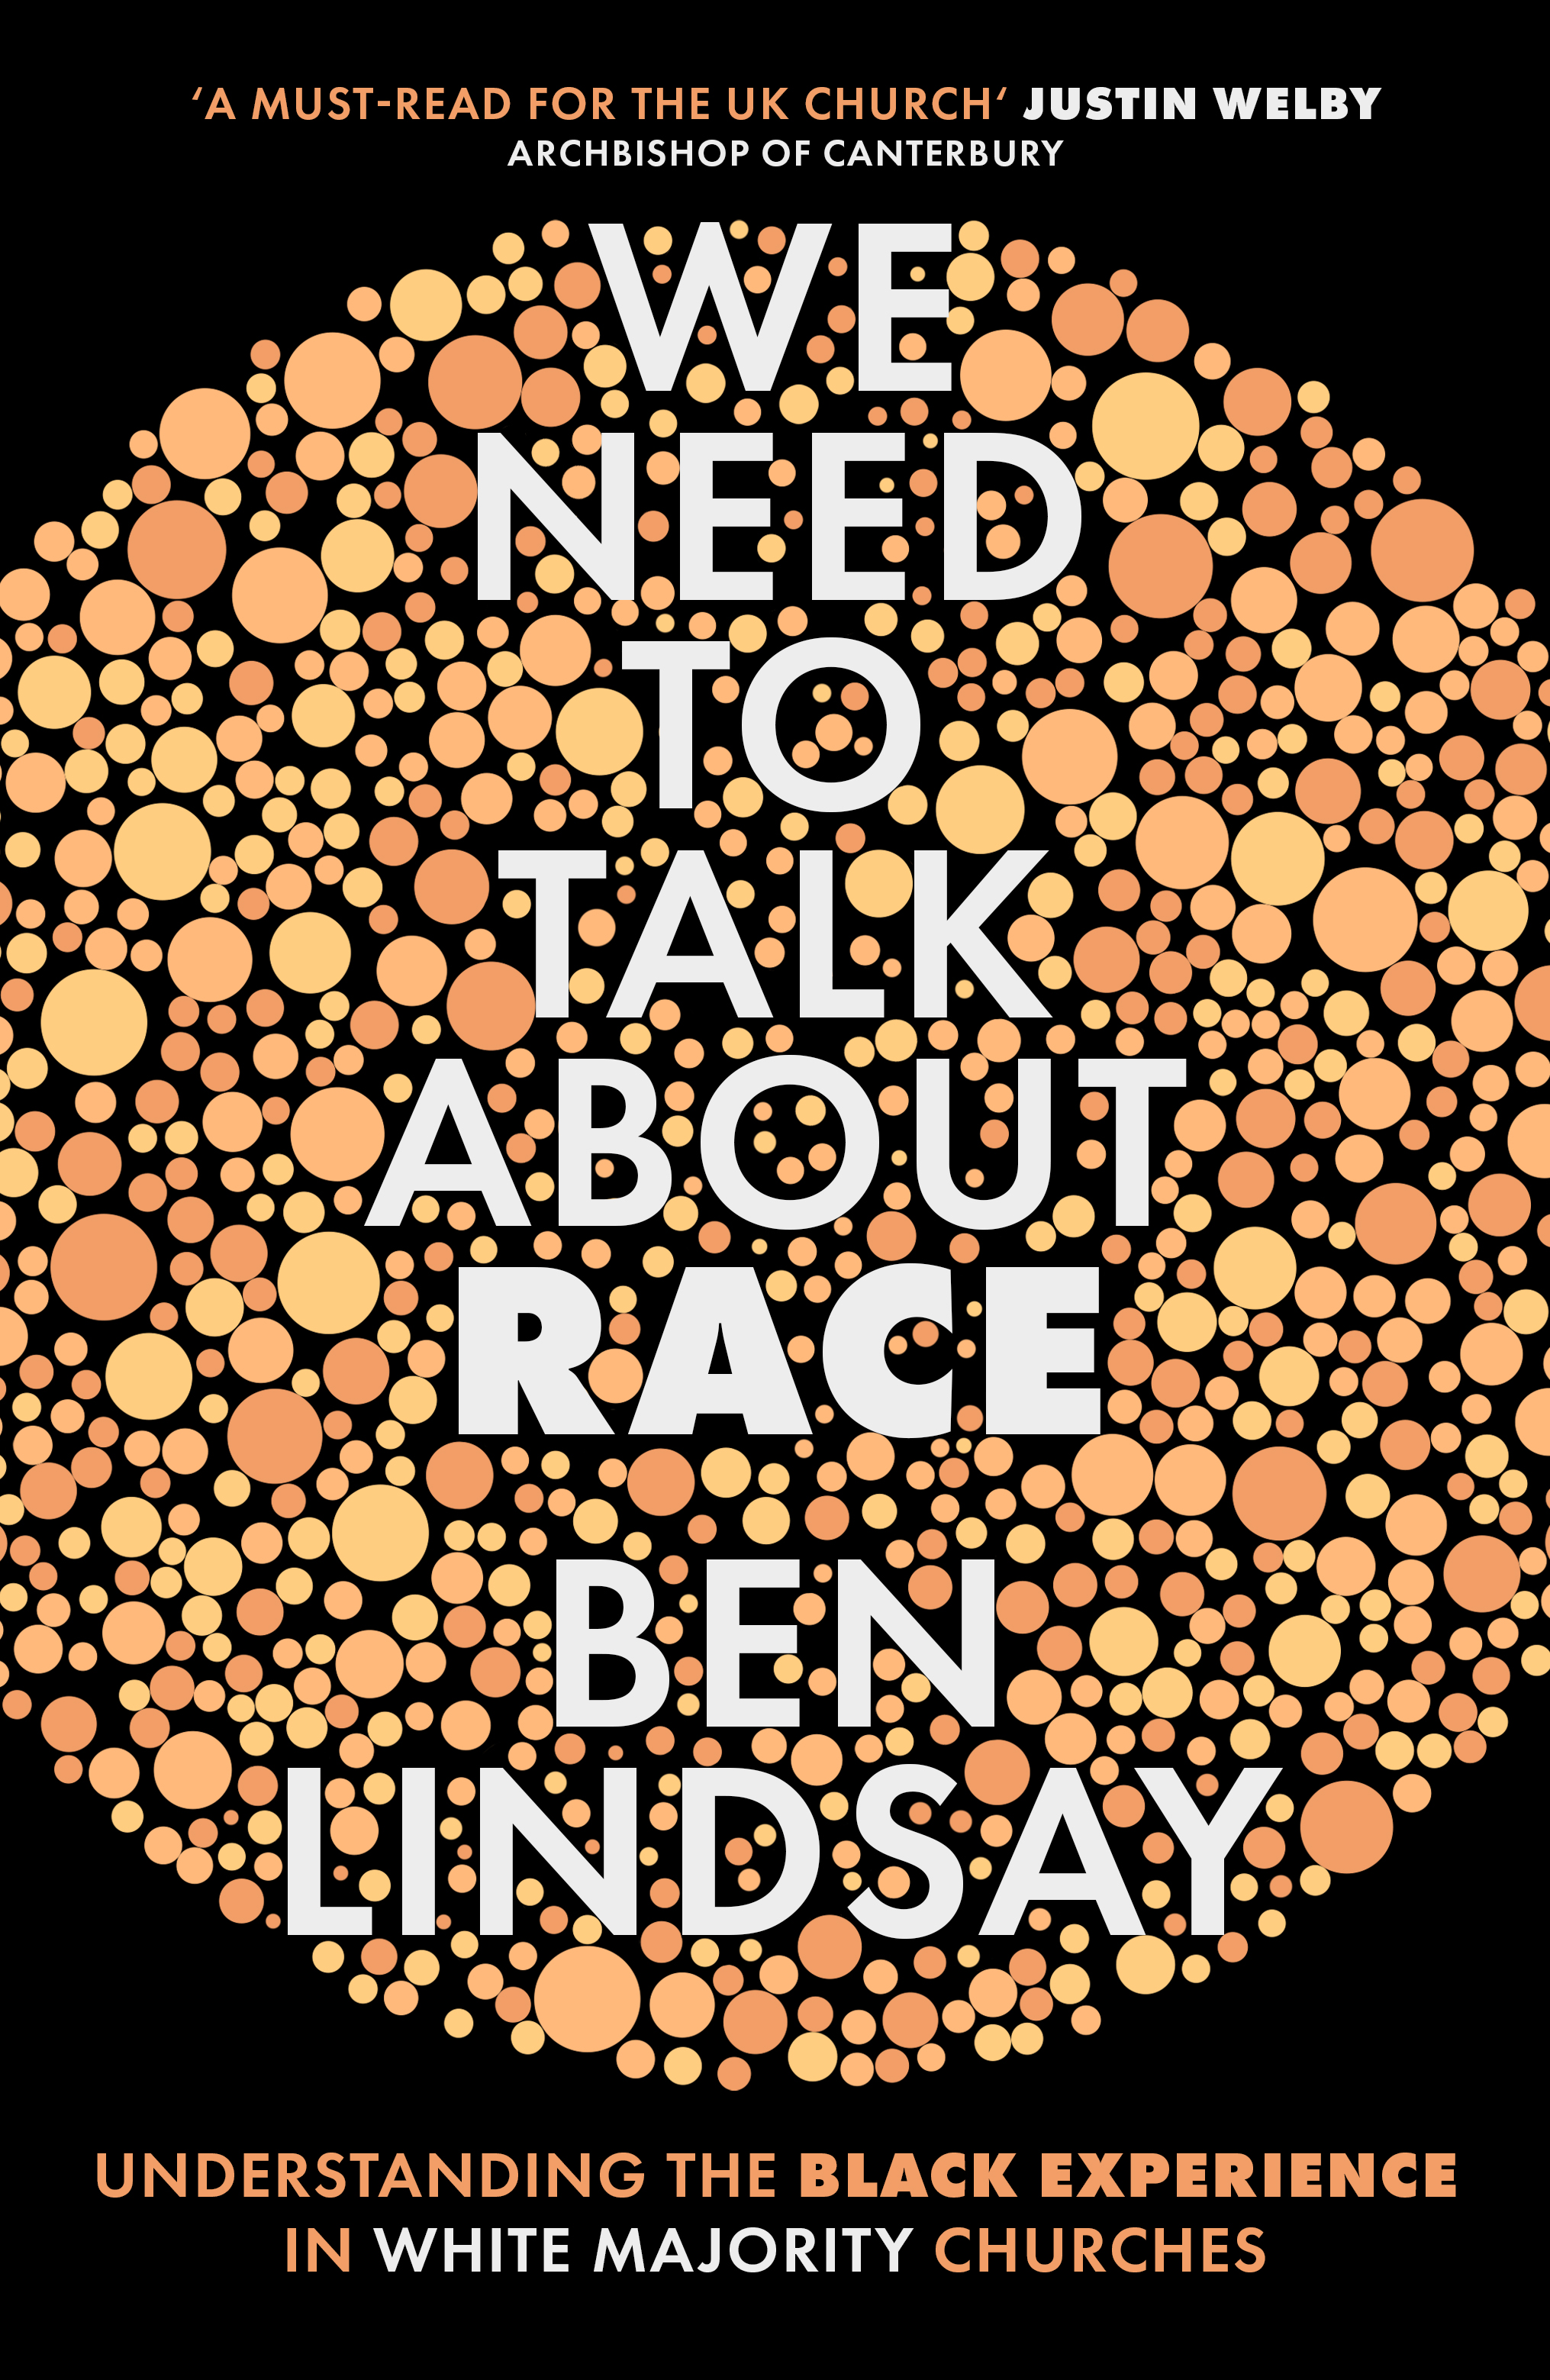 We Need To Talk About Race: Understanding the Black Experience in White Majority Churches